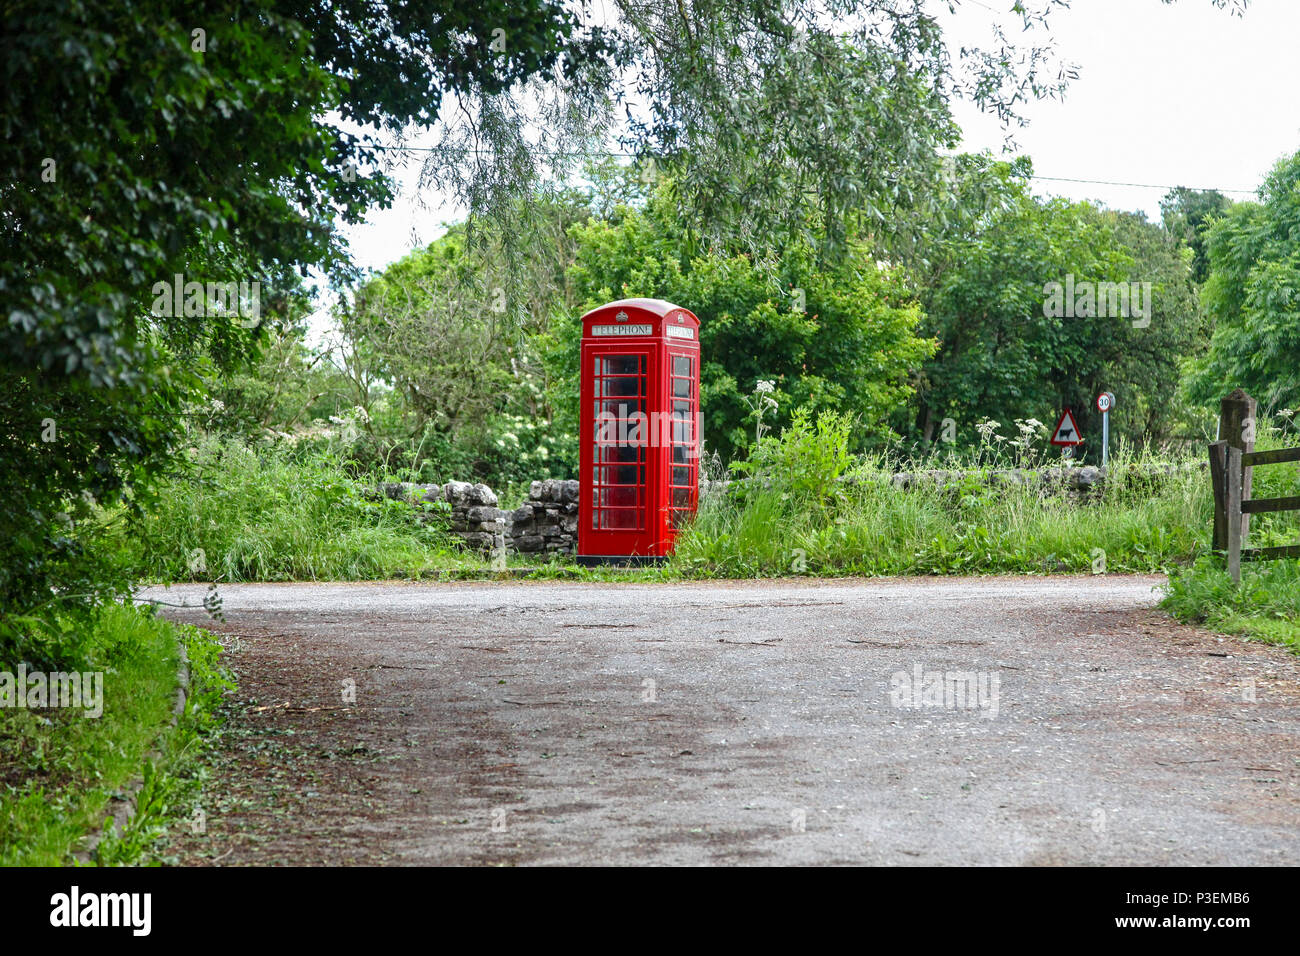 A red telephone box or kiosk at Hulme End, Manifold Valley, Staffordshire, England, UK - Stock Image